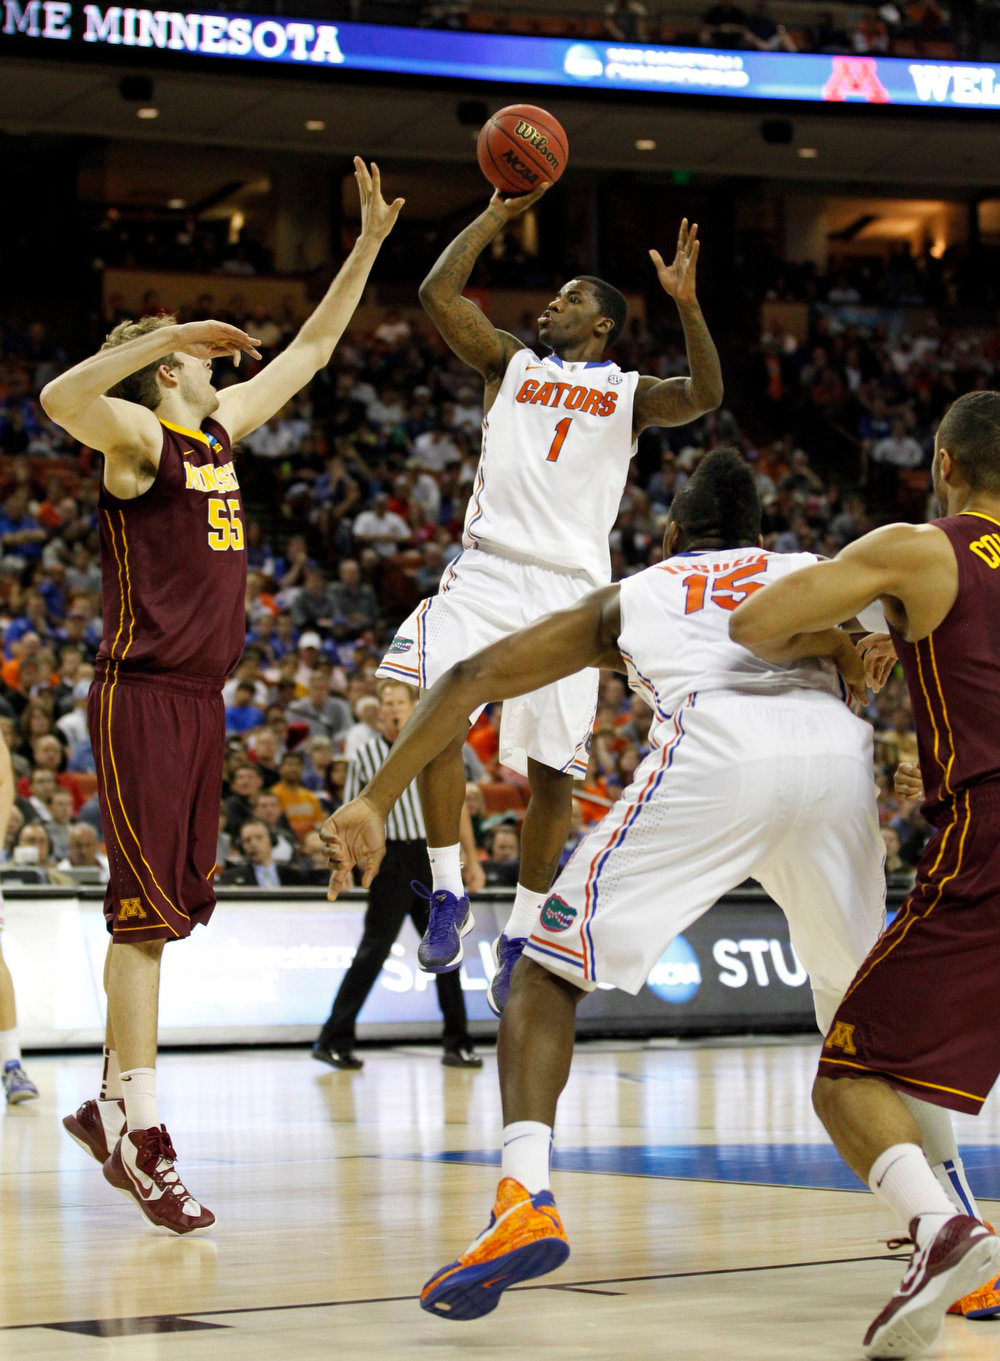 . University of Florida guard Kenny Boynton (C) shoots over University of Minnesota center Elliott Eliason (L) as forward Will Yeguete blocks out during the first half of their third round NCAA basketball game in Austin, Texas March 24, 2013.   REUTERS/Mike Stone